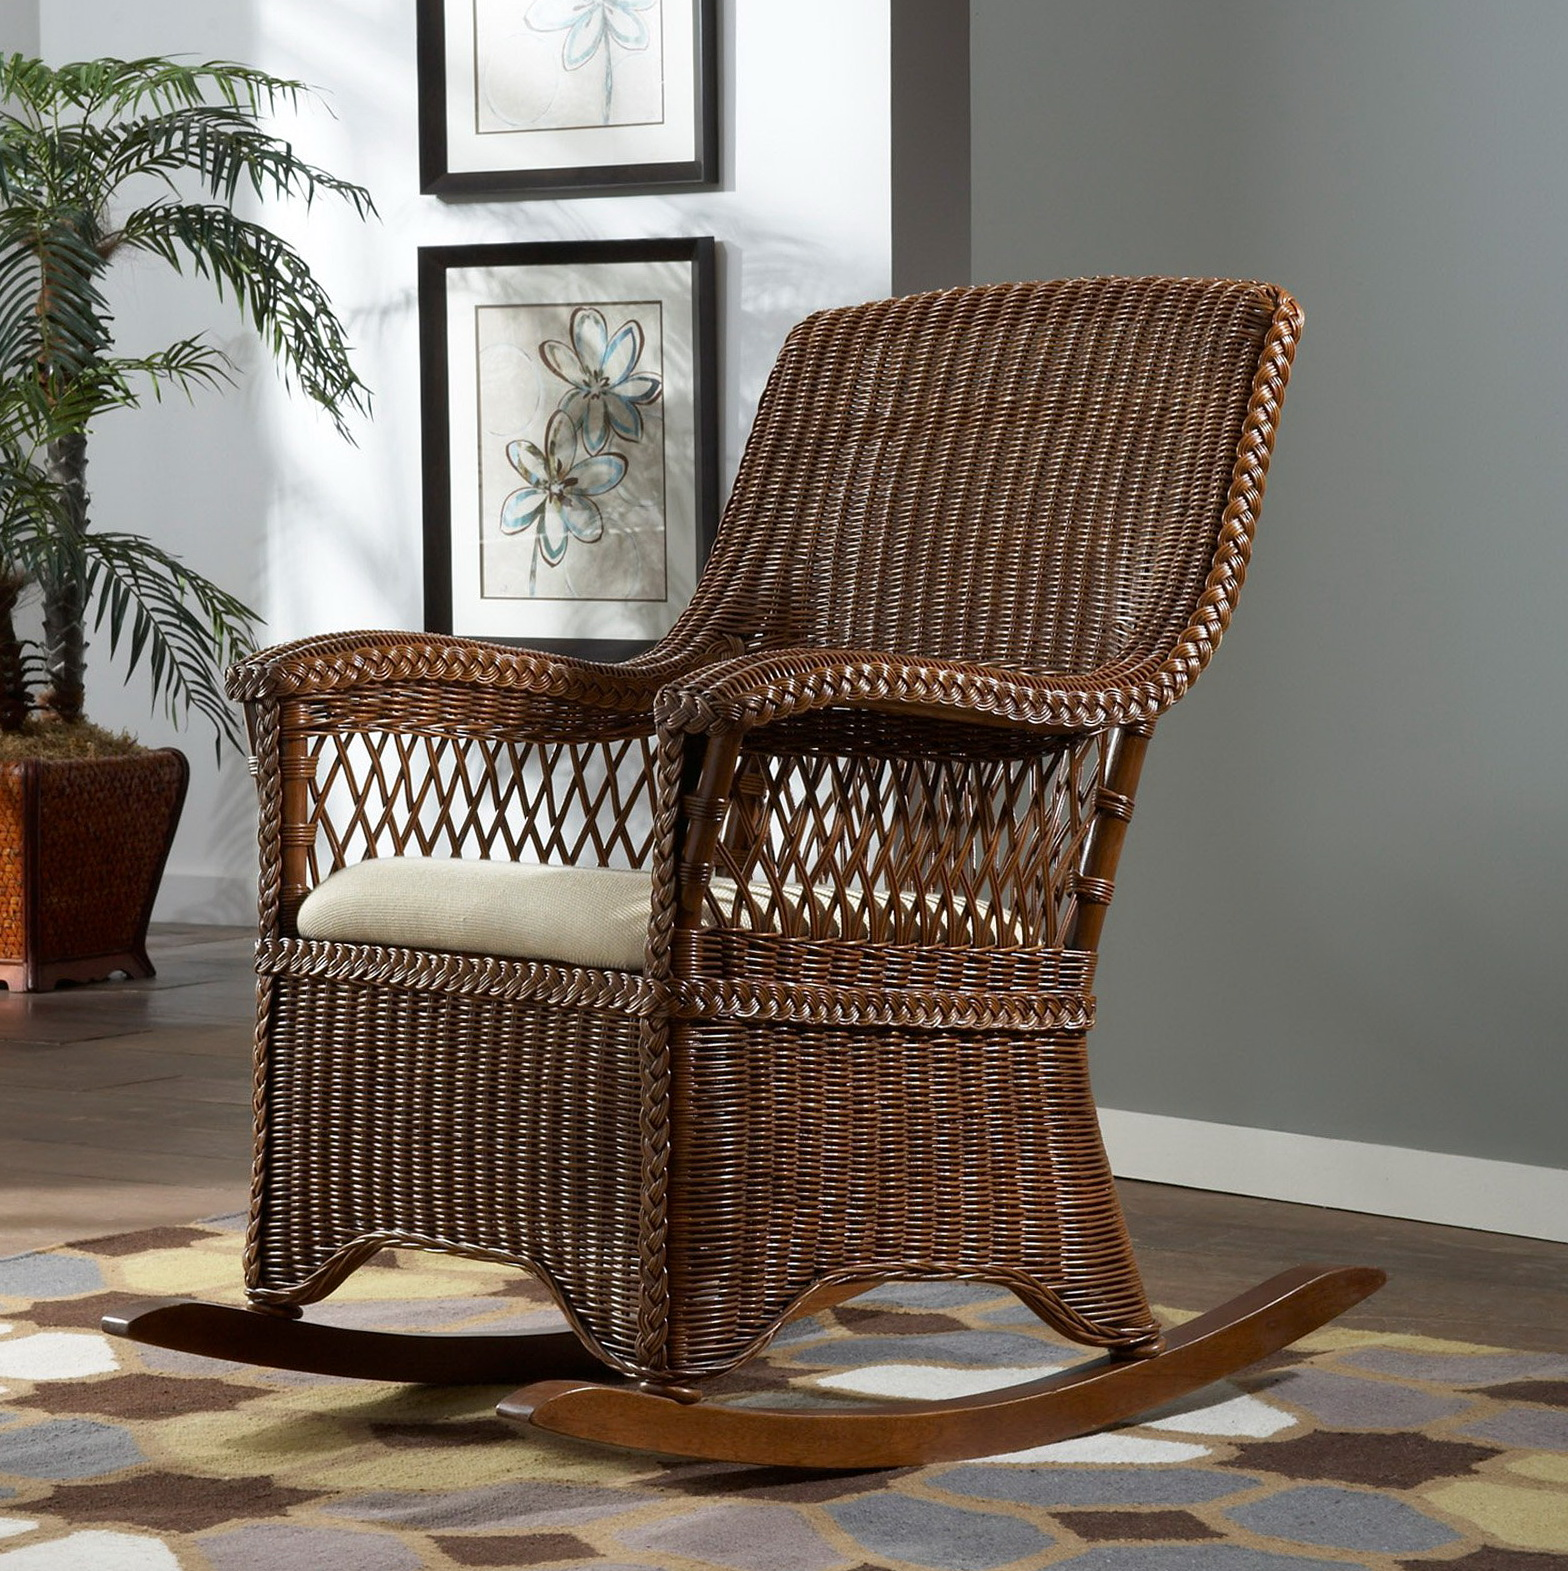 Indoor Wicker Chair Cushions | Home Design Ideas